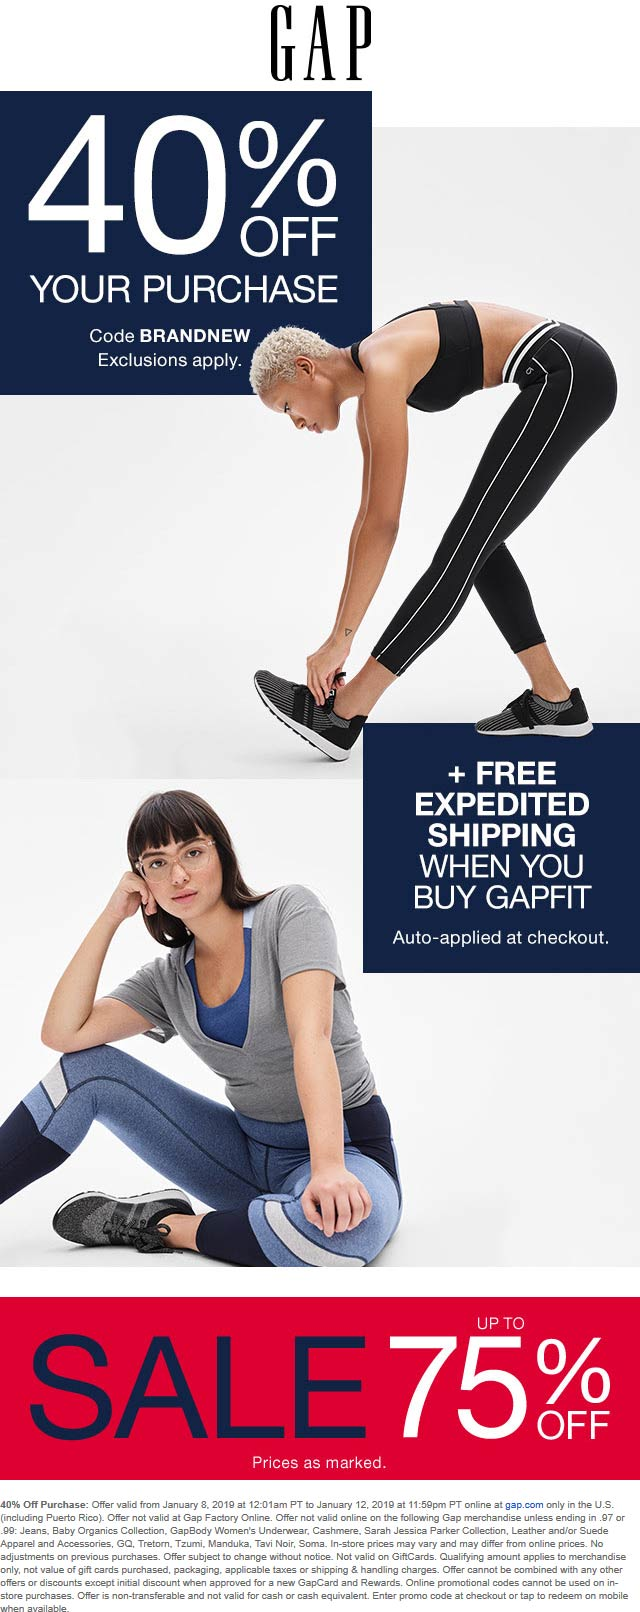 Gap Coupon November 2019 40% off online at Gap via promo code BRANDNEW